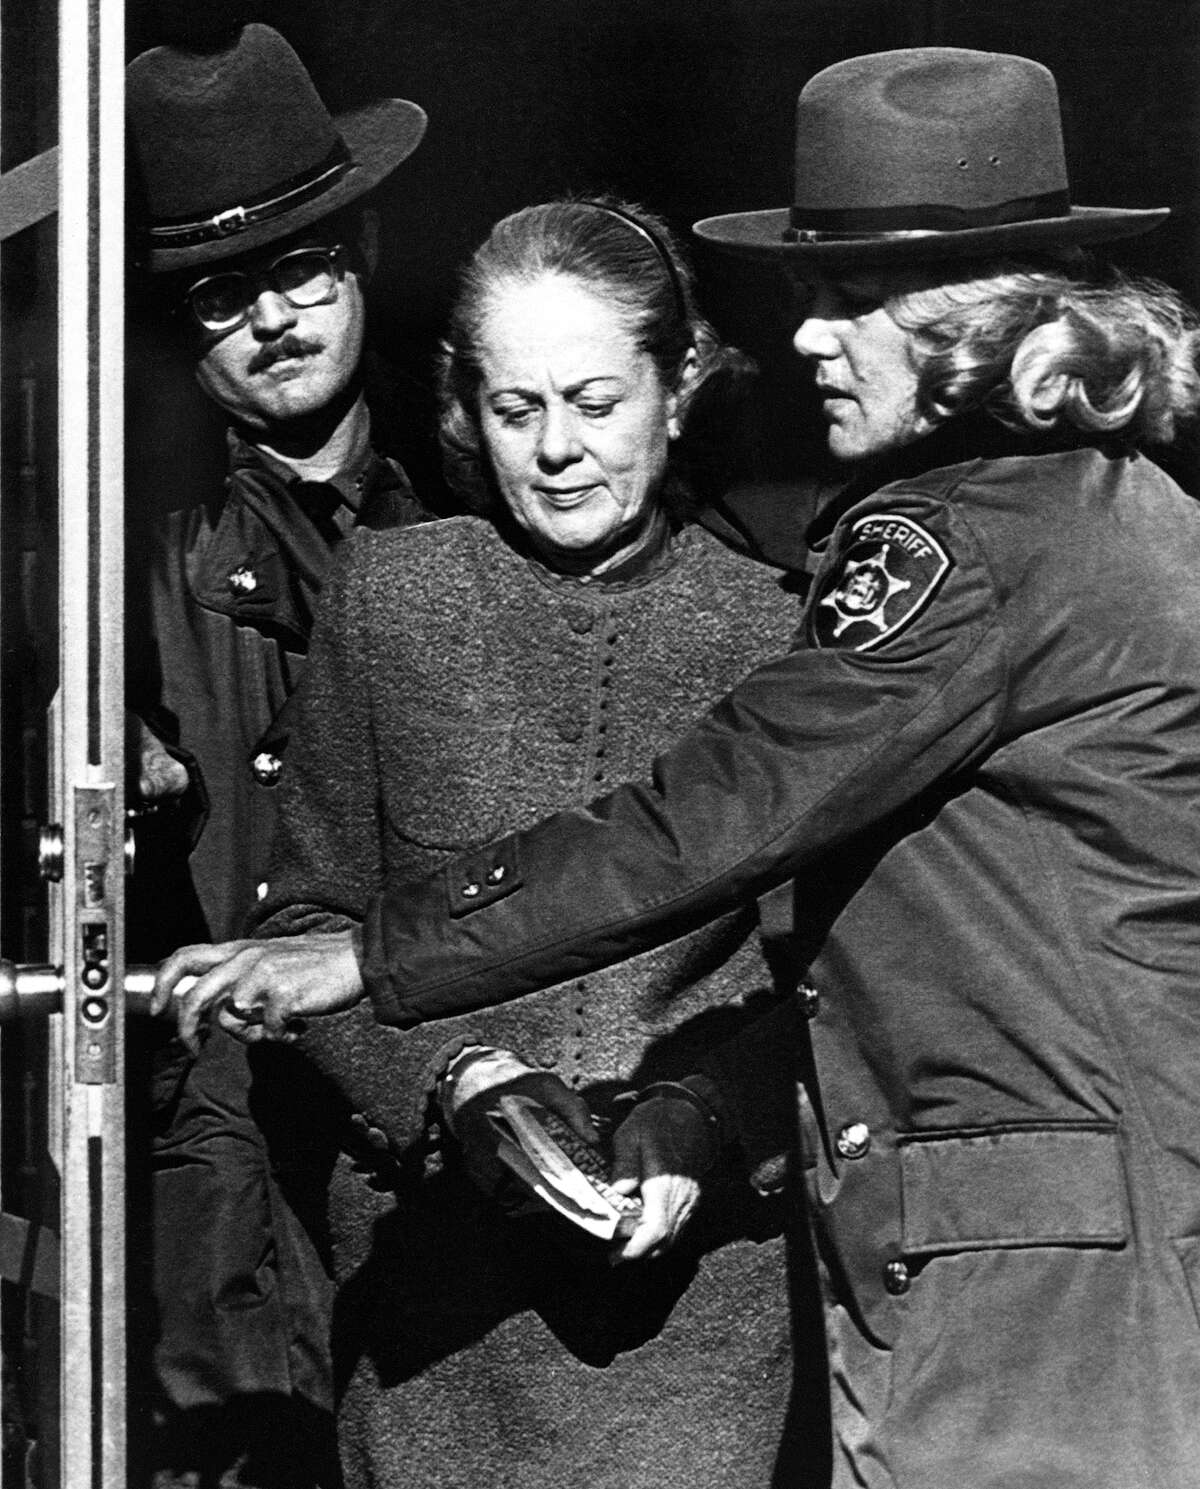 FILE - In this March 20, 1981 file photo, Jean Harris, handcuffed and carrying a book, leaves the Westchester County Jail enroute to the Westchester County Courthouse in Valhalla, N.Y. Harris, the patrician girls' school headmistress who spent 12 years in prison for the 1980 killing of her longtime lover,